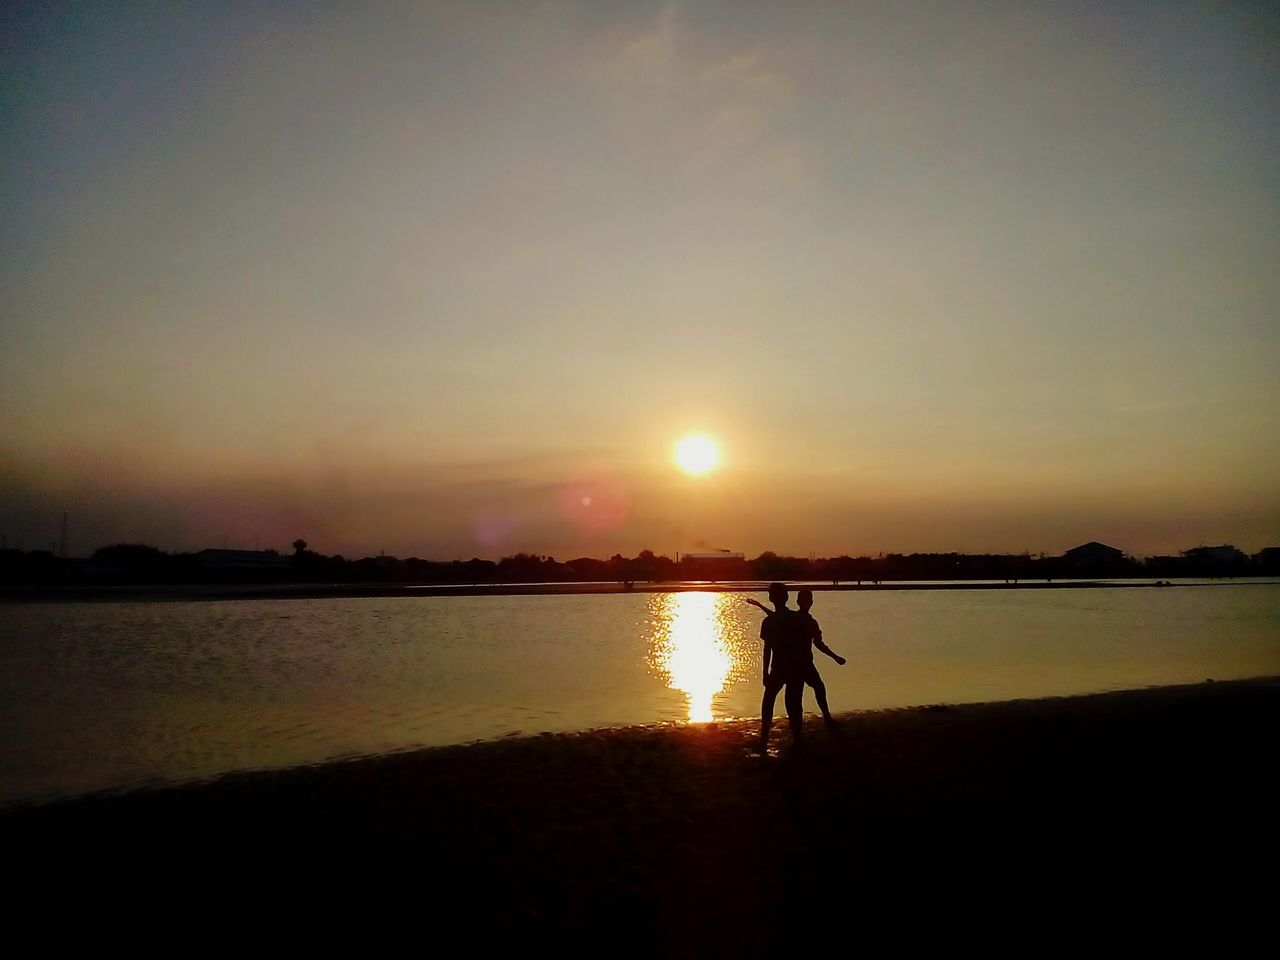 sunset, silhouette, reflection, real people, nature, water, beauty in nature, sun, full length, sky, scenics, leisure activity, men, one person, tranquil scene, standing, outdoors, tranquility, lake, lifestyles, clear sky, day, people